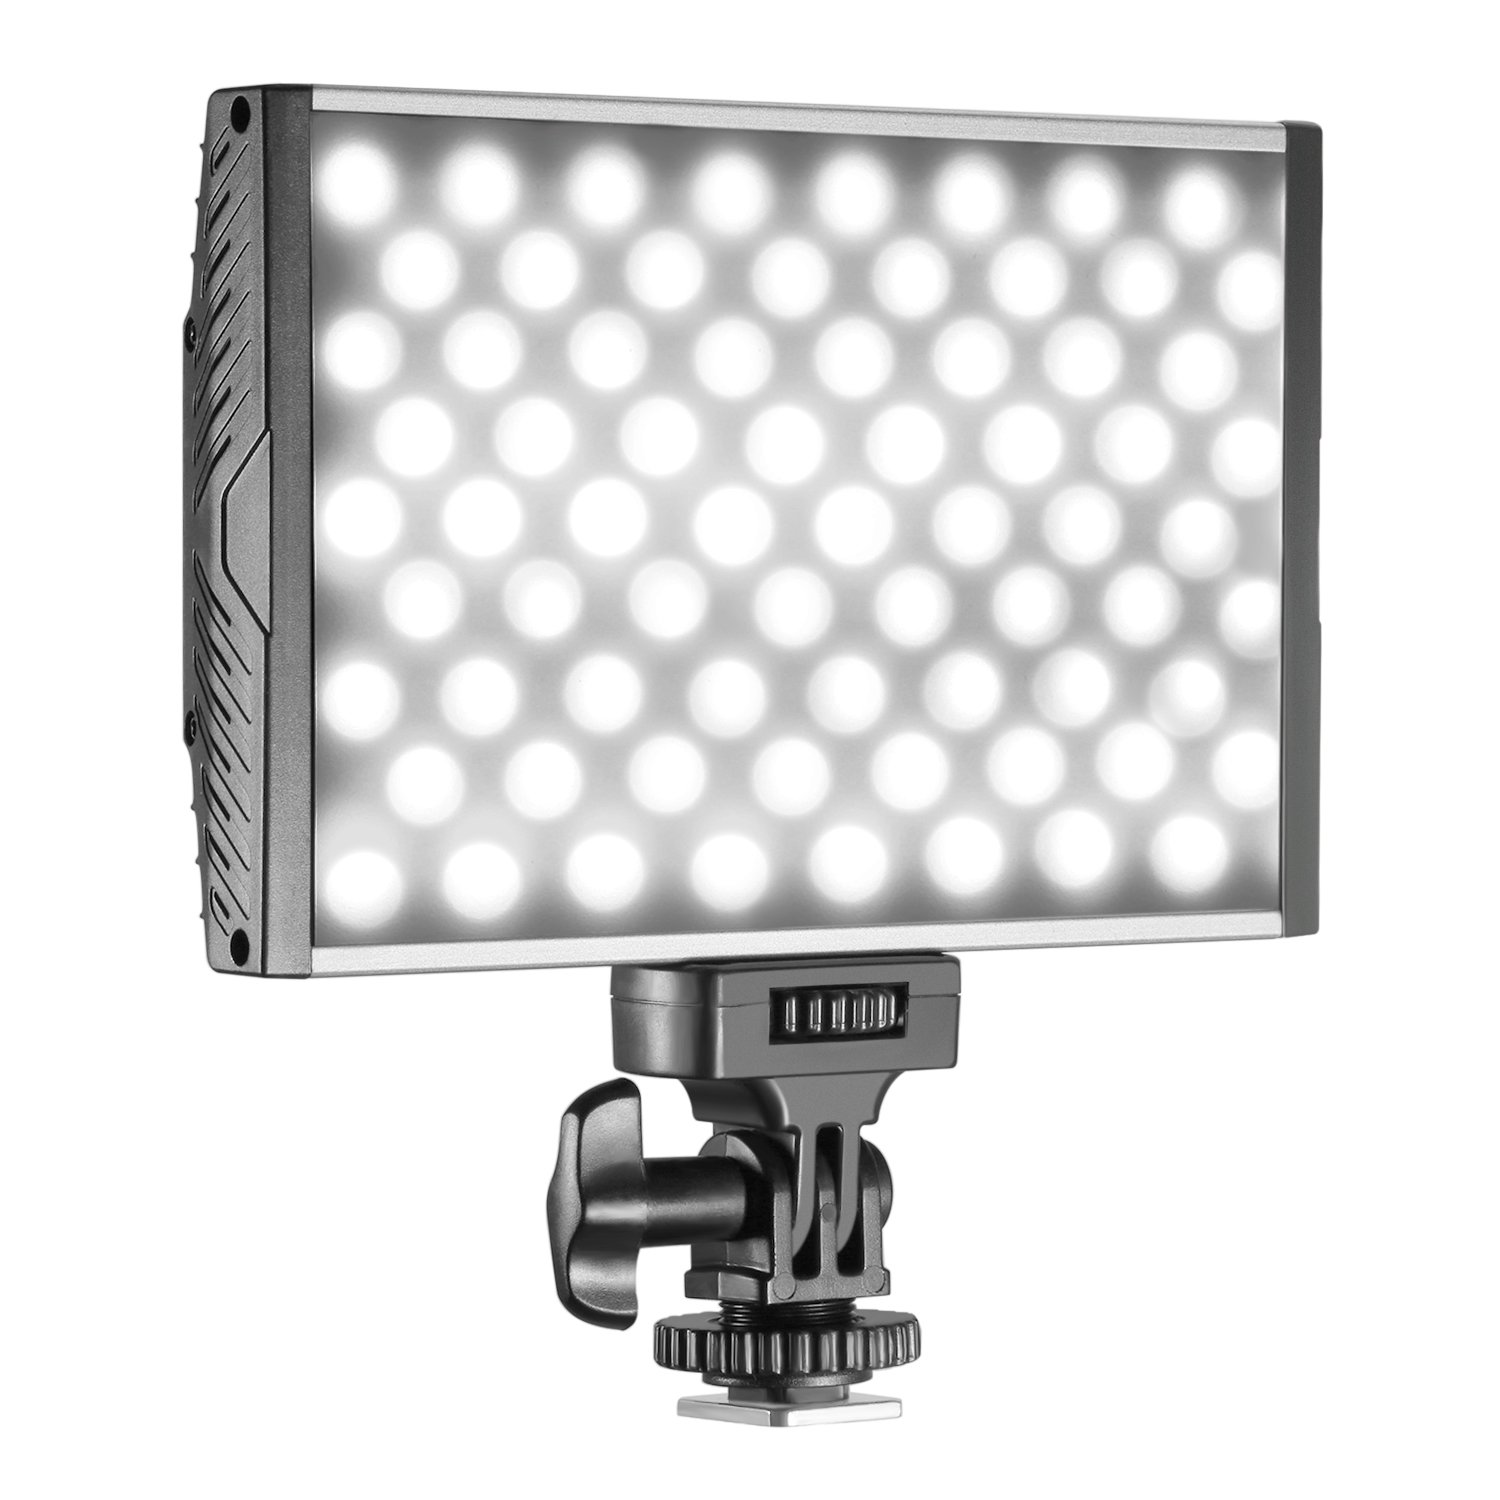 Neewer 144 LED PT-15B PRO Dimmable Camera/Camcorder Video Light Panel with Hot Shoe, Ultra-thin Bi-color Temperature 3200K-5600K LED Light for Canon Nikon Sony Pentax Panasonic Olympus DSLR 10089184